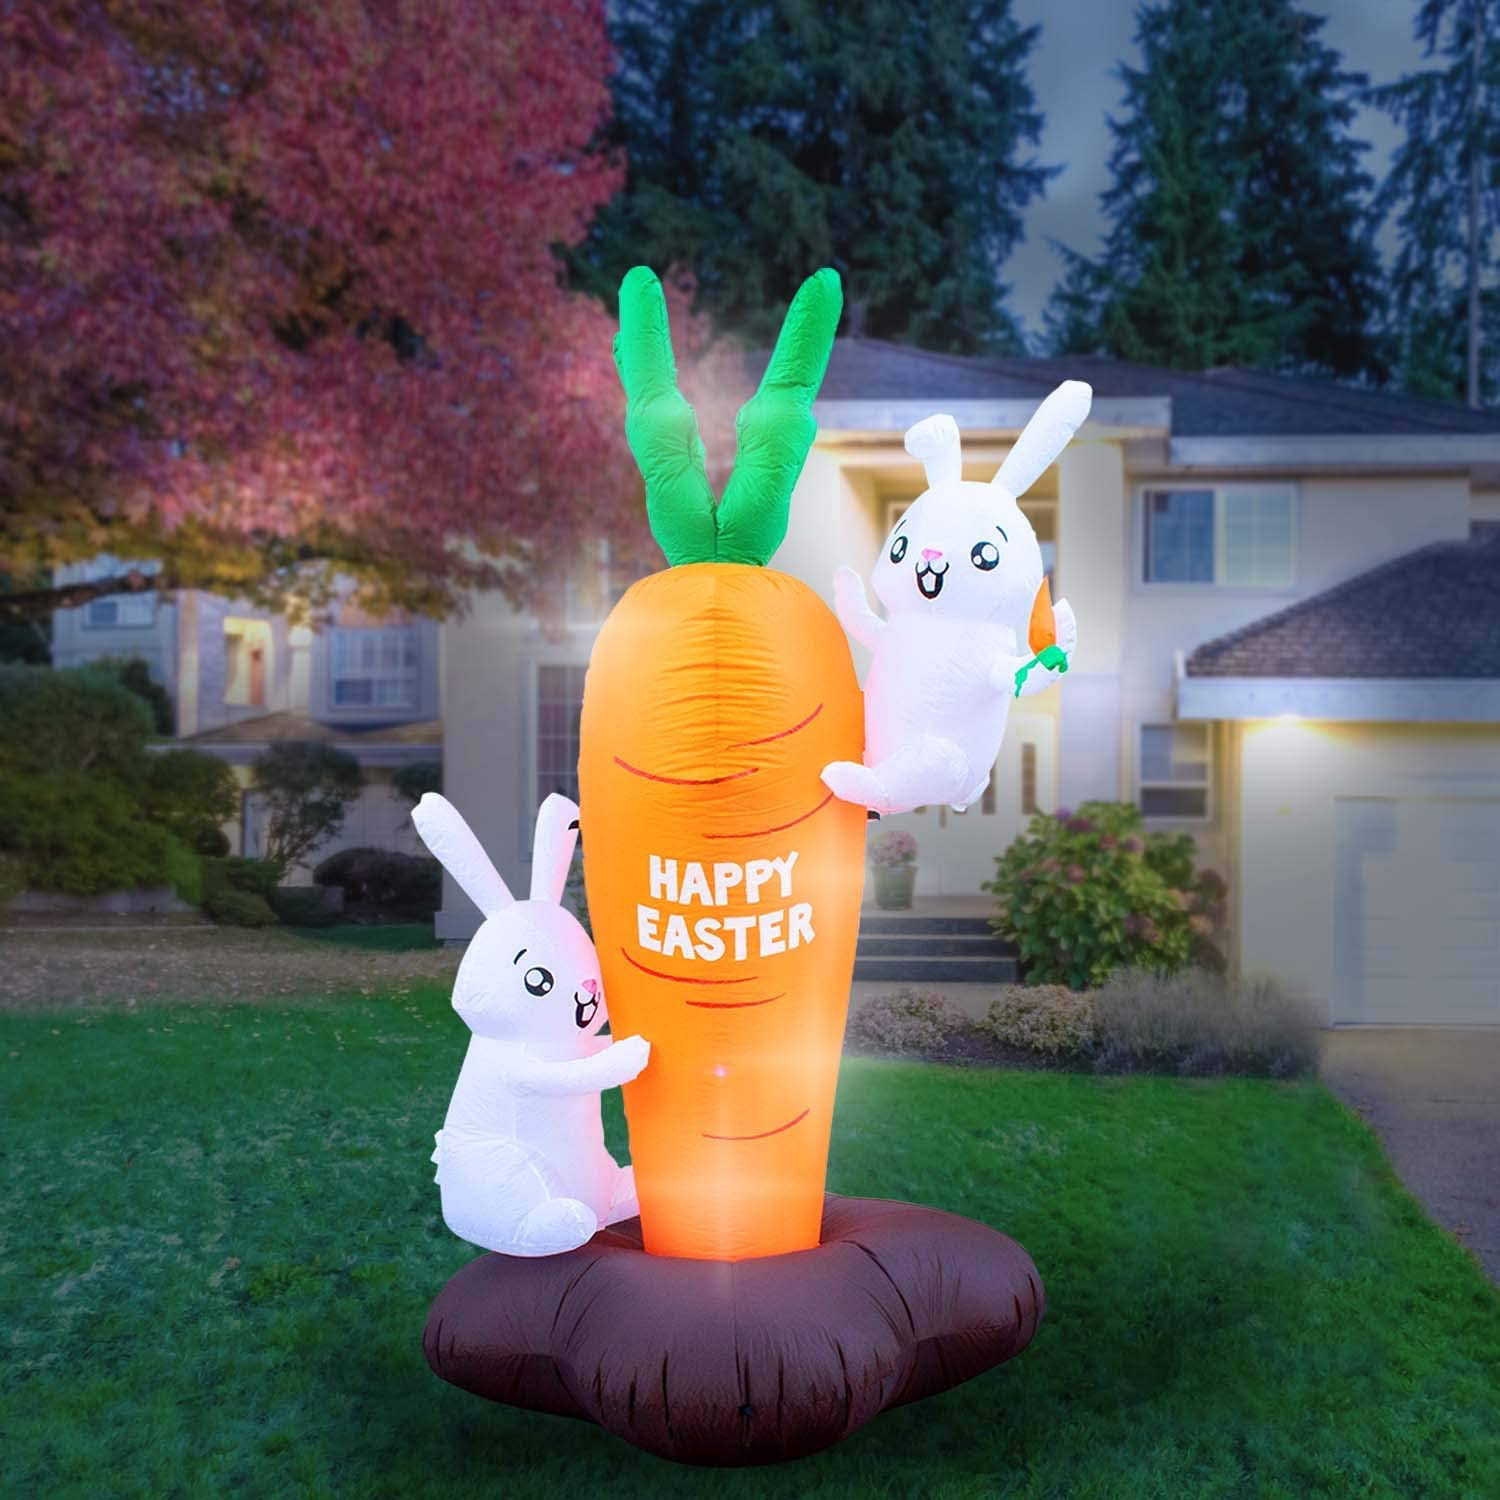 Holidayana 8 Foot Inflatable Easter Bunny Climbing Carred Decoration, Includes Built-in Bulbs, Tie-Down Points, and Powerful Built-in Fan